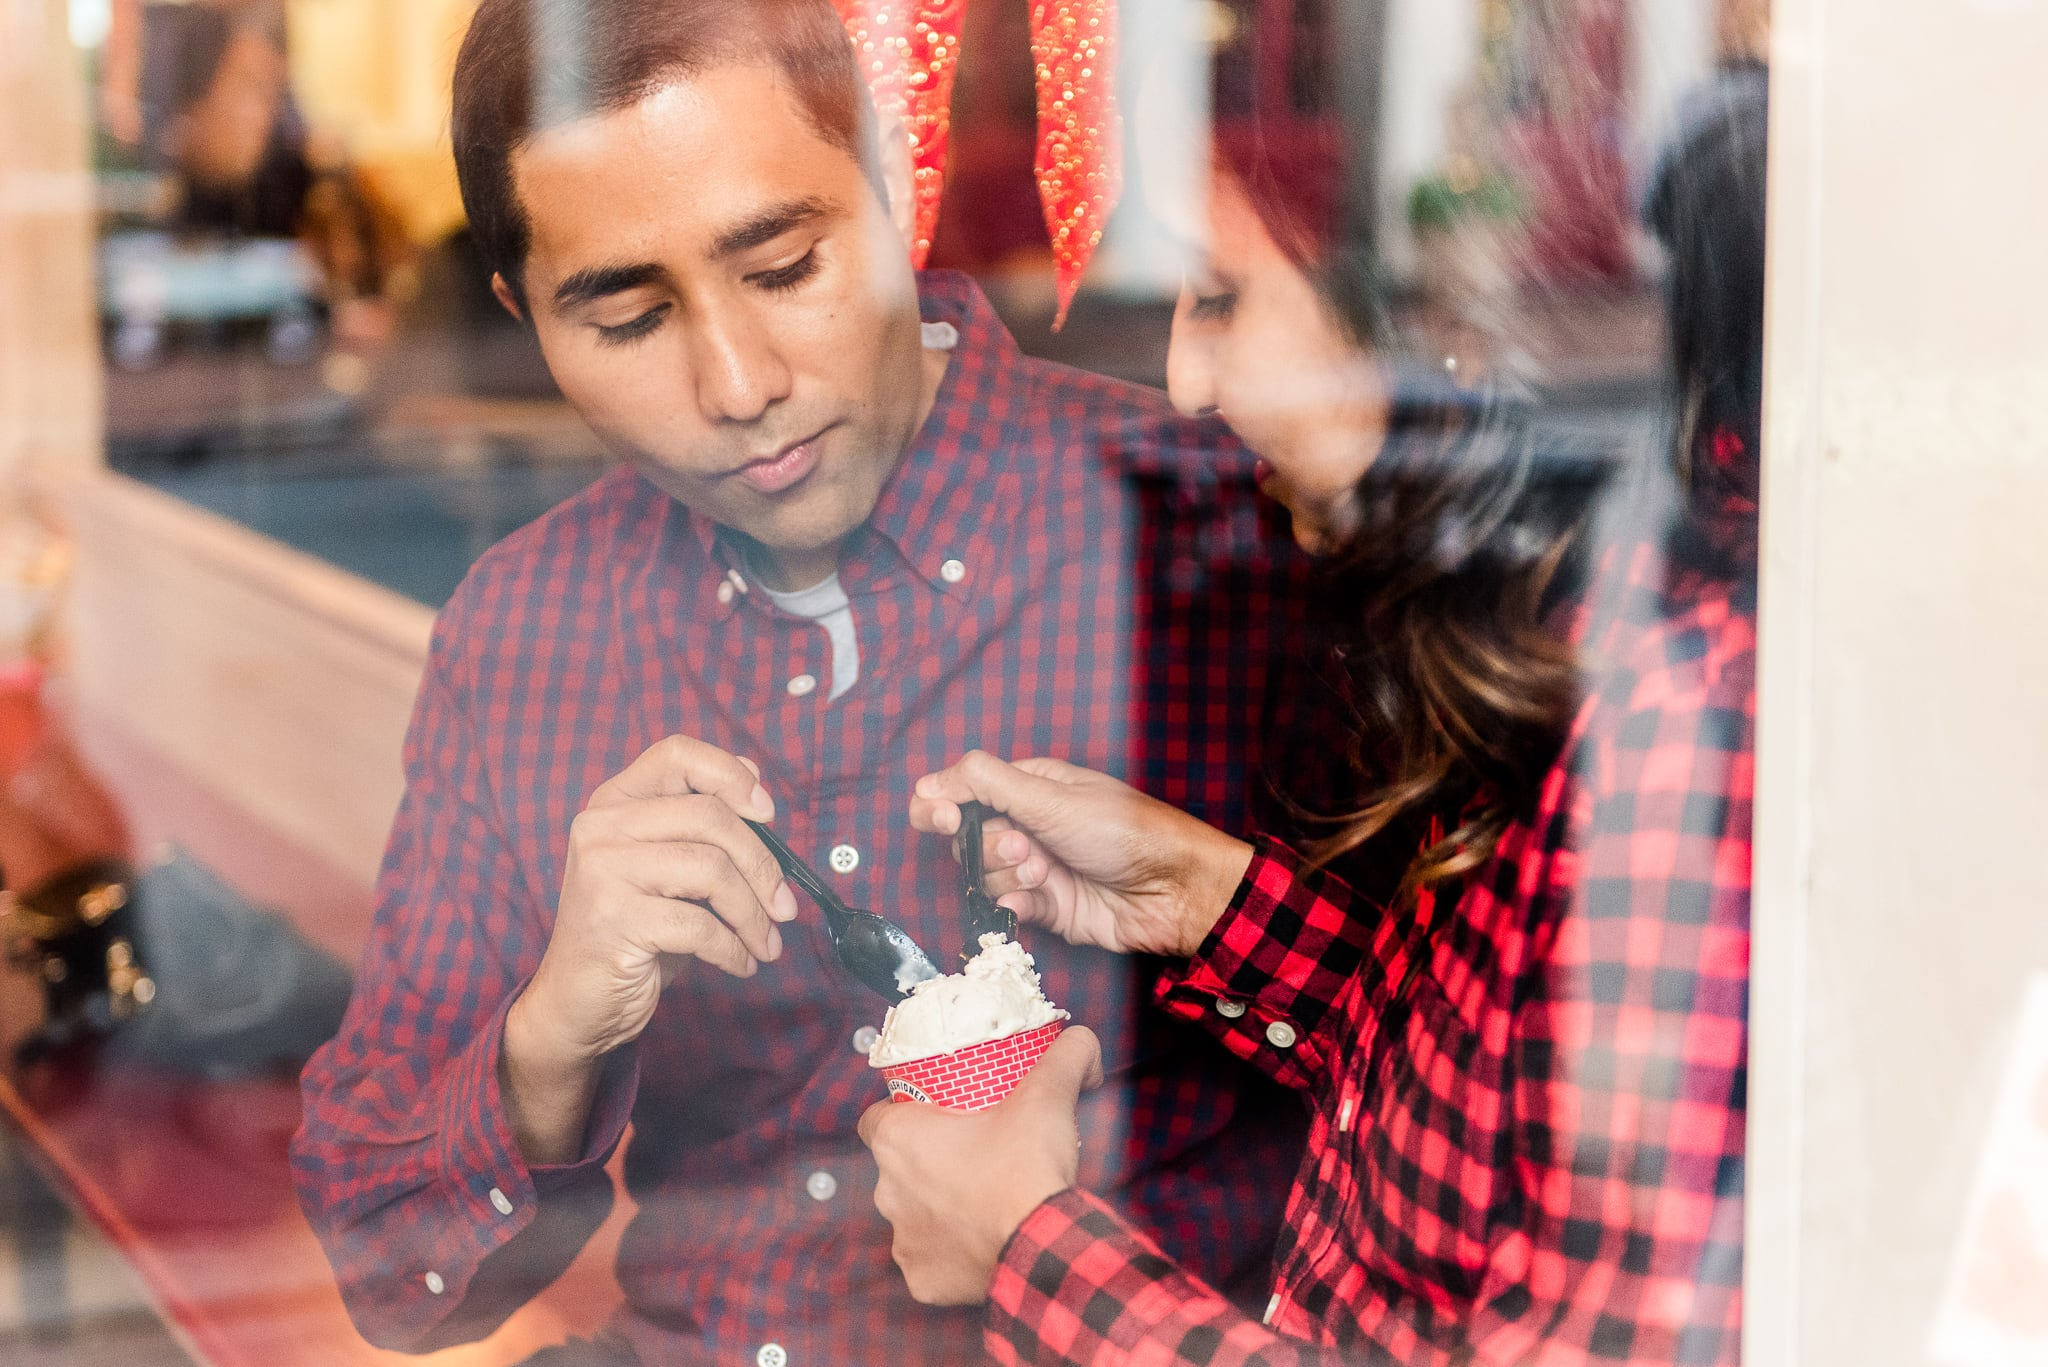 An engaged couple shares ice cream from Pop's Old Fashioned Ice Cream during their engagement session in Old Town Alexandria